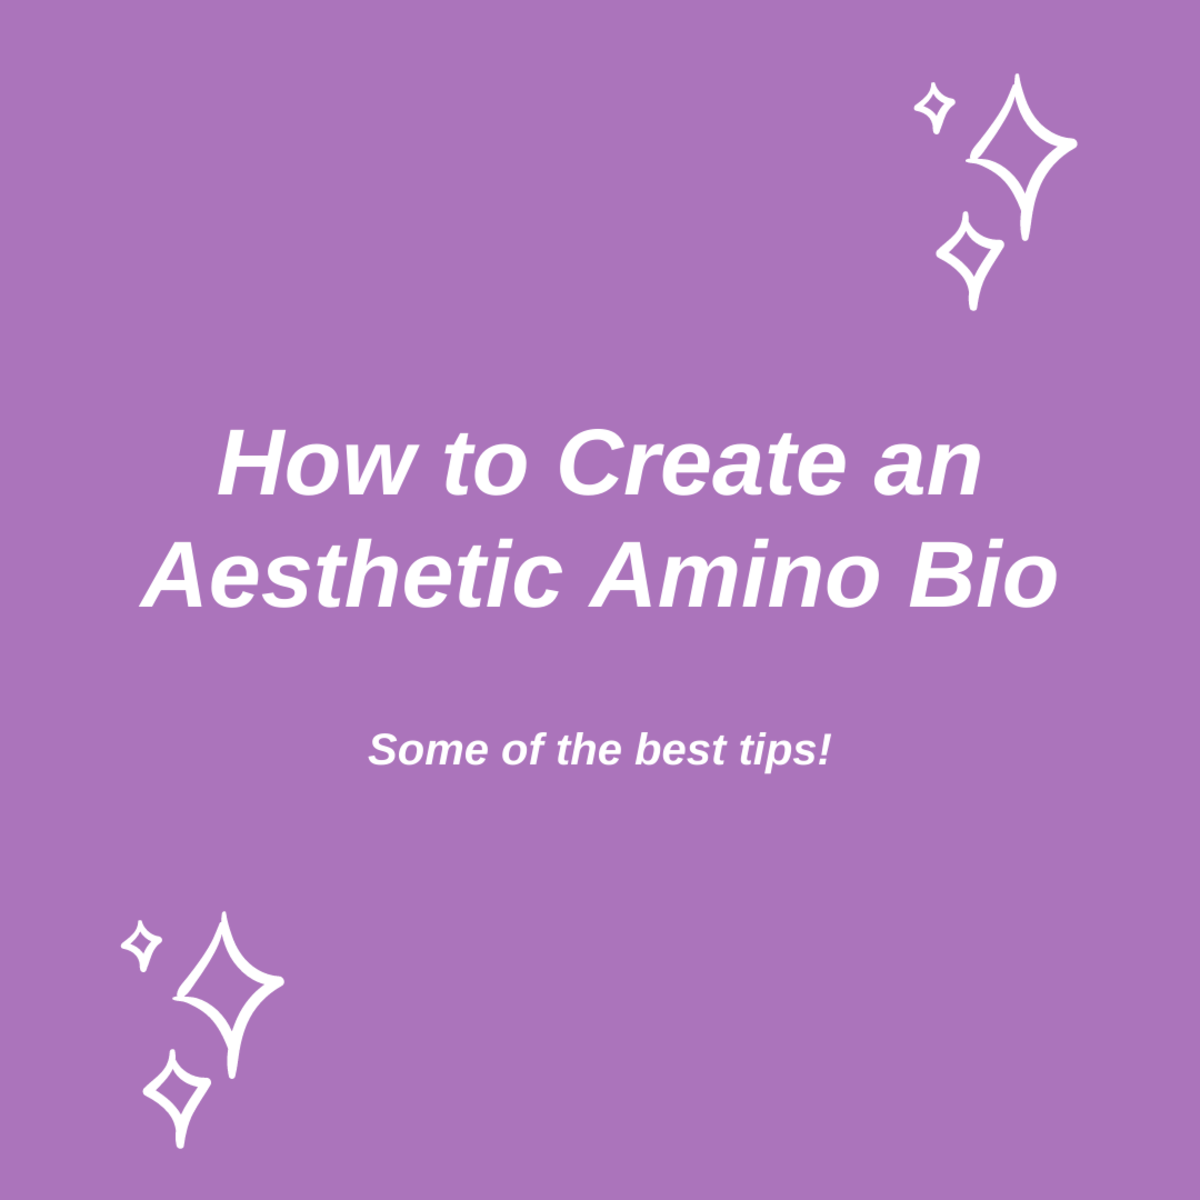 Learn how to create an aesthetic Amino bio in this in-depth guide!